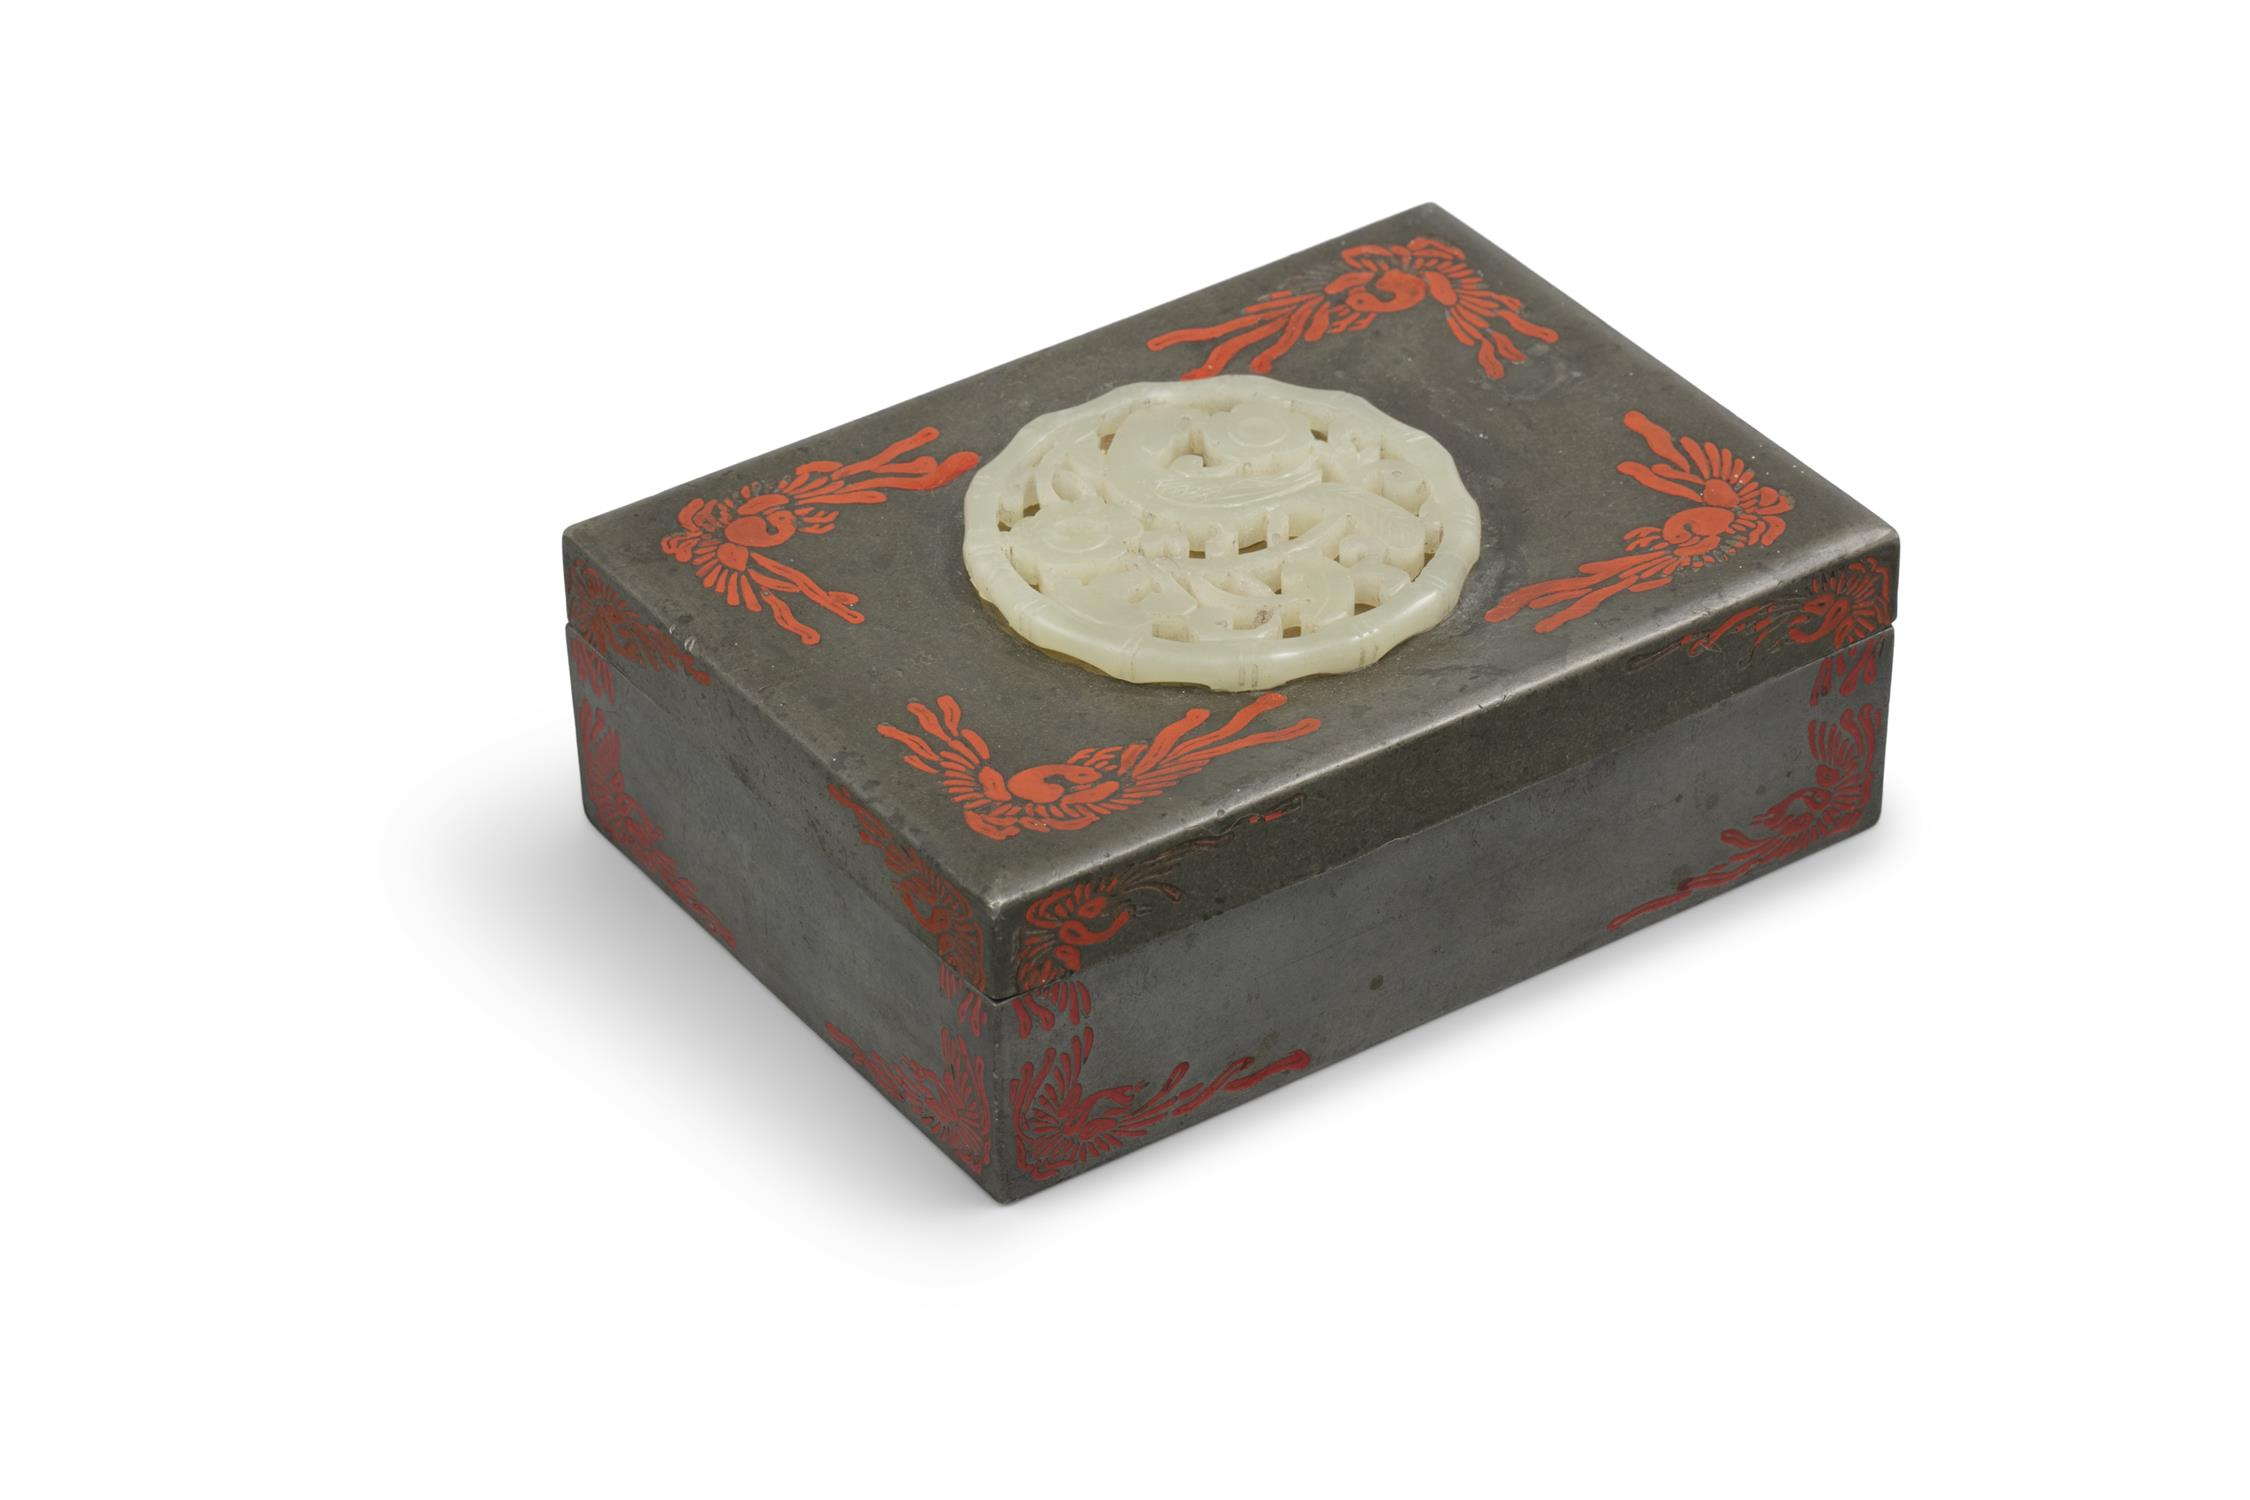 A PARCEL LACQUERED PEWTER LIDDED BOX SET WITH A JADE PIECE BY YAMANAKA & CO The box made in Japan, - Image 13 of 15